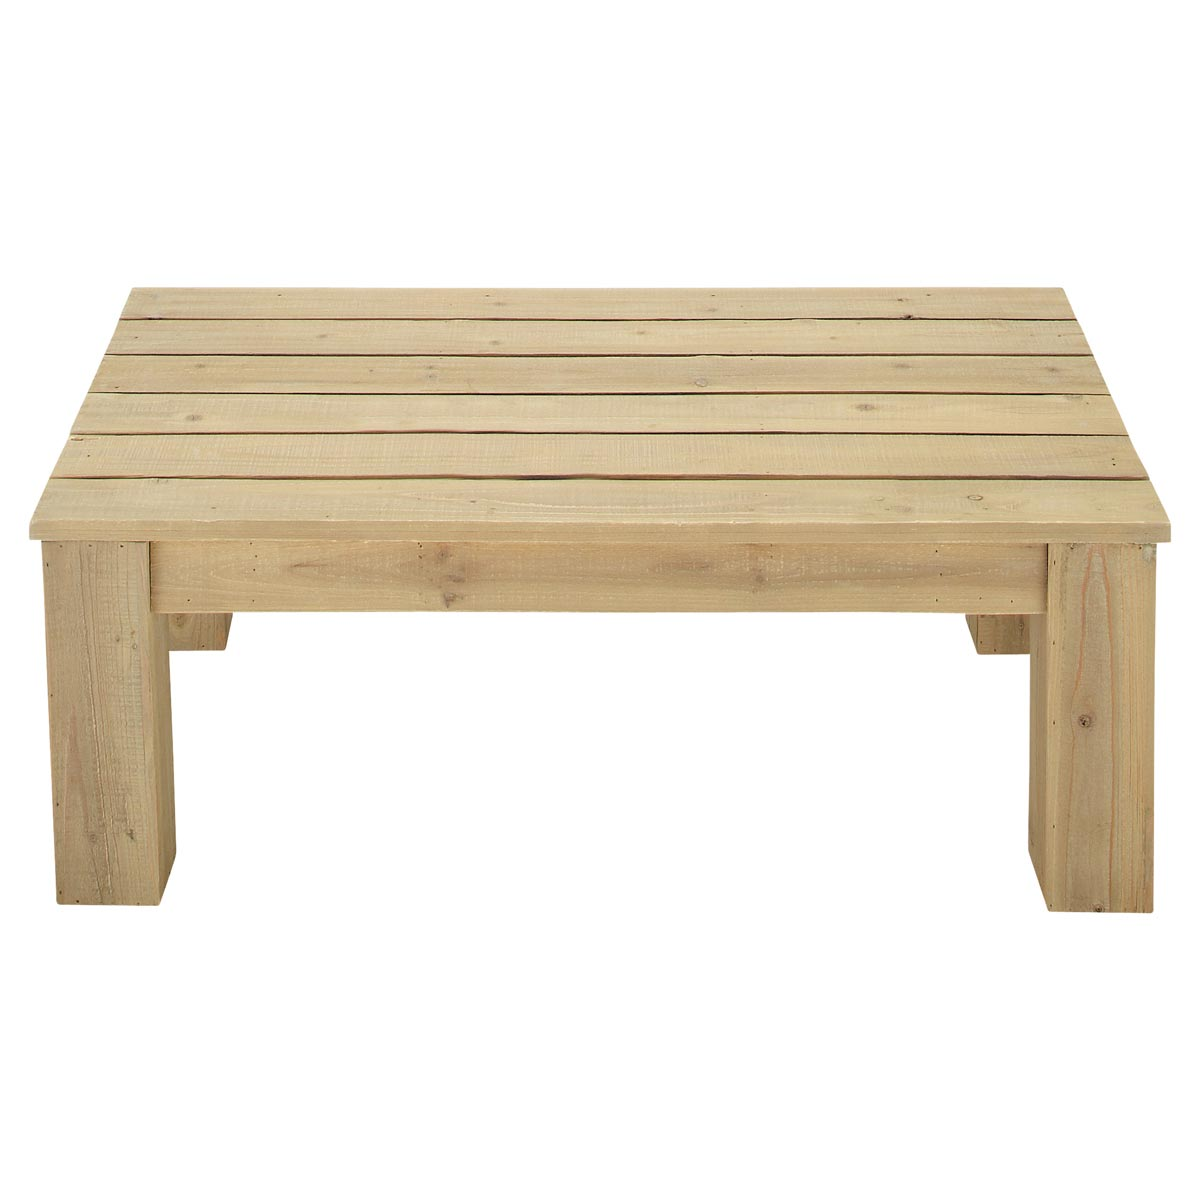 Table basse jardin bois mobilier design d coration d 39 int rieur - Table basse jardin d ulysse ...